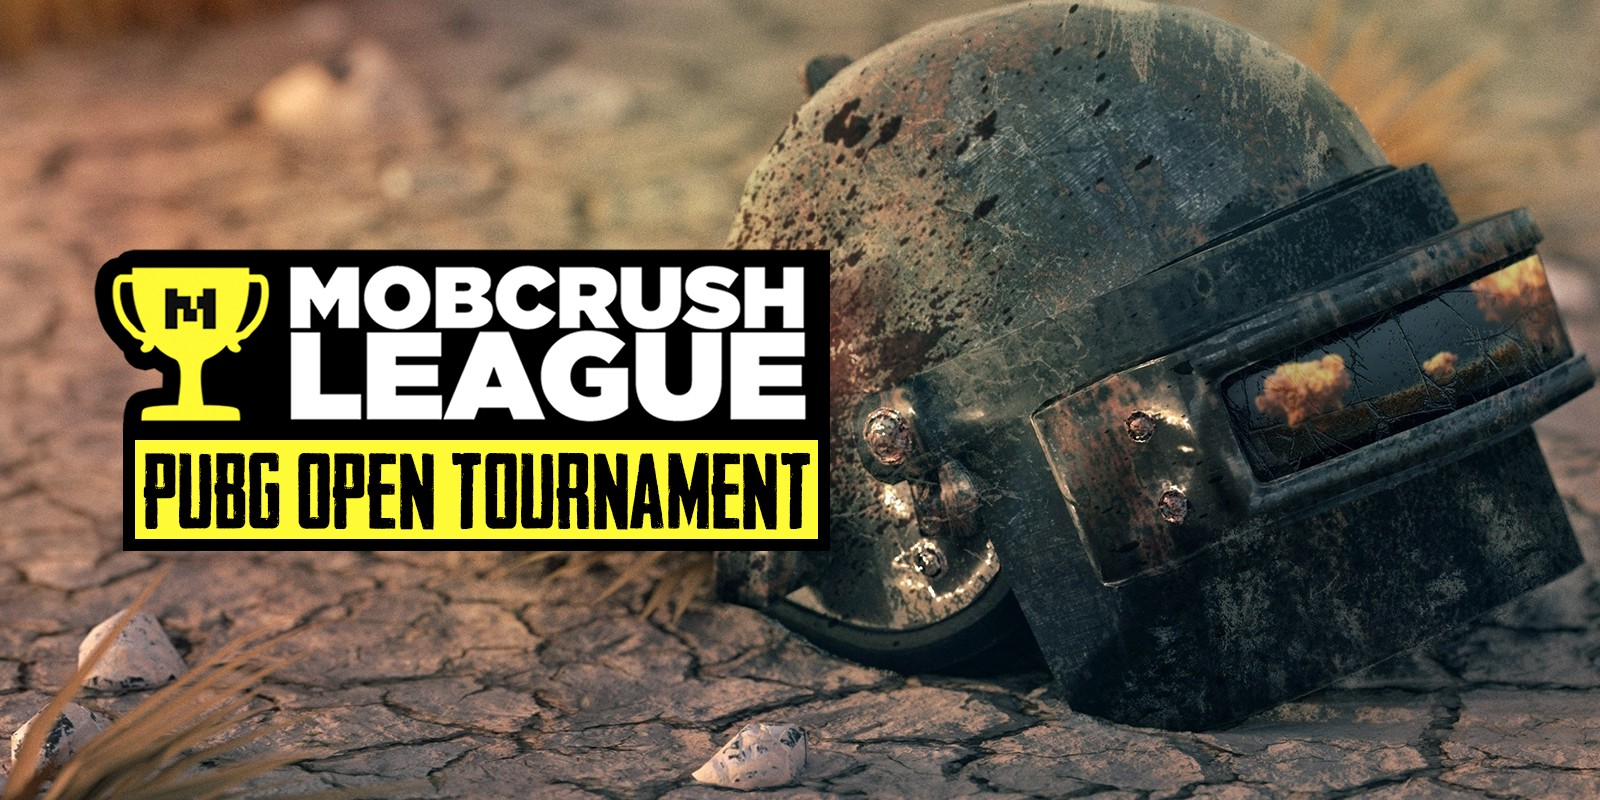 The first Mobcrush League tournament for 2019 is here! Win